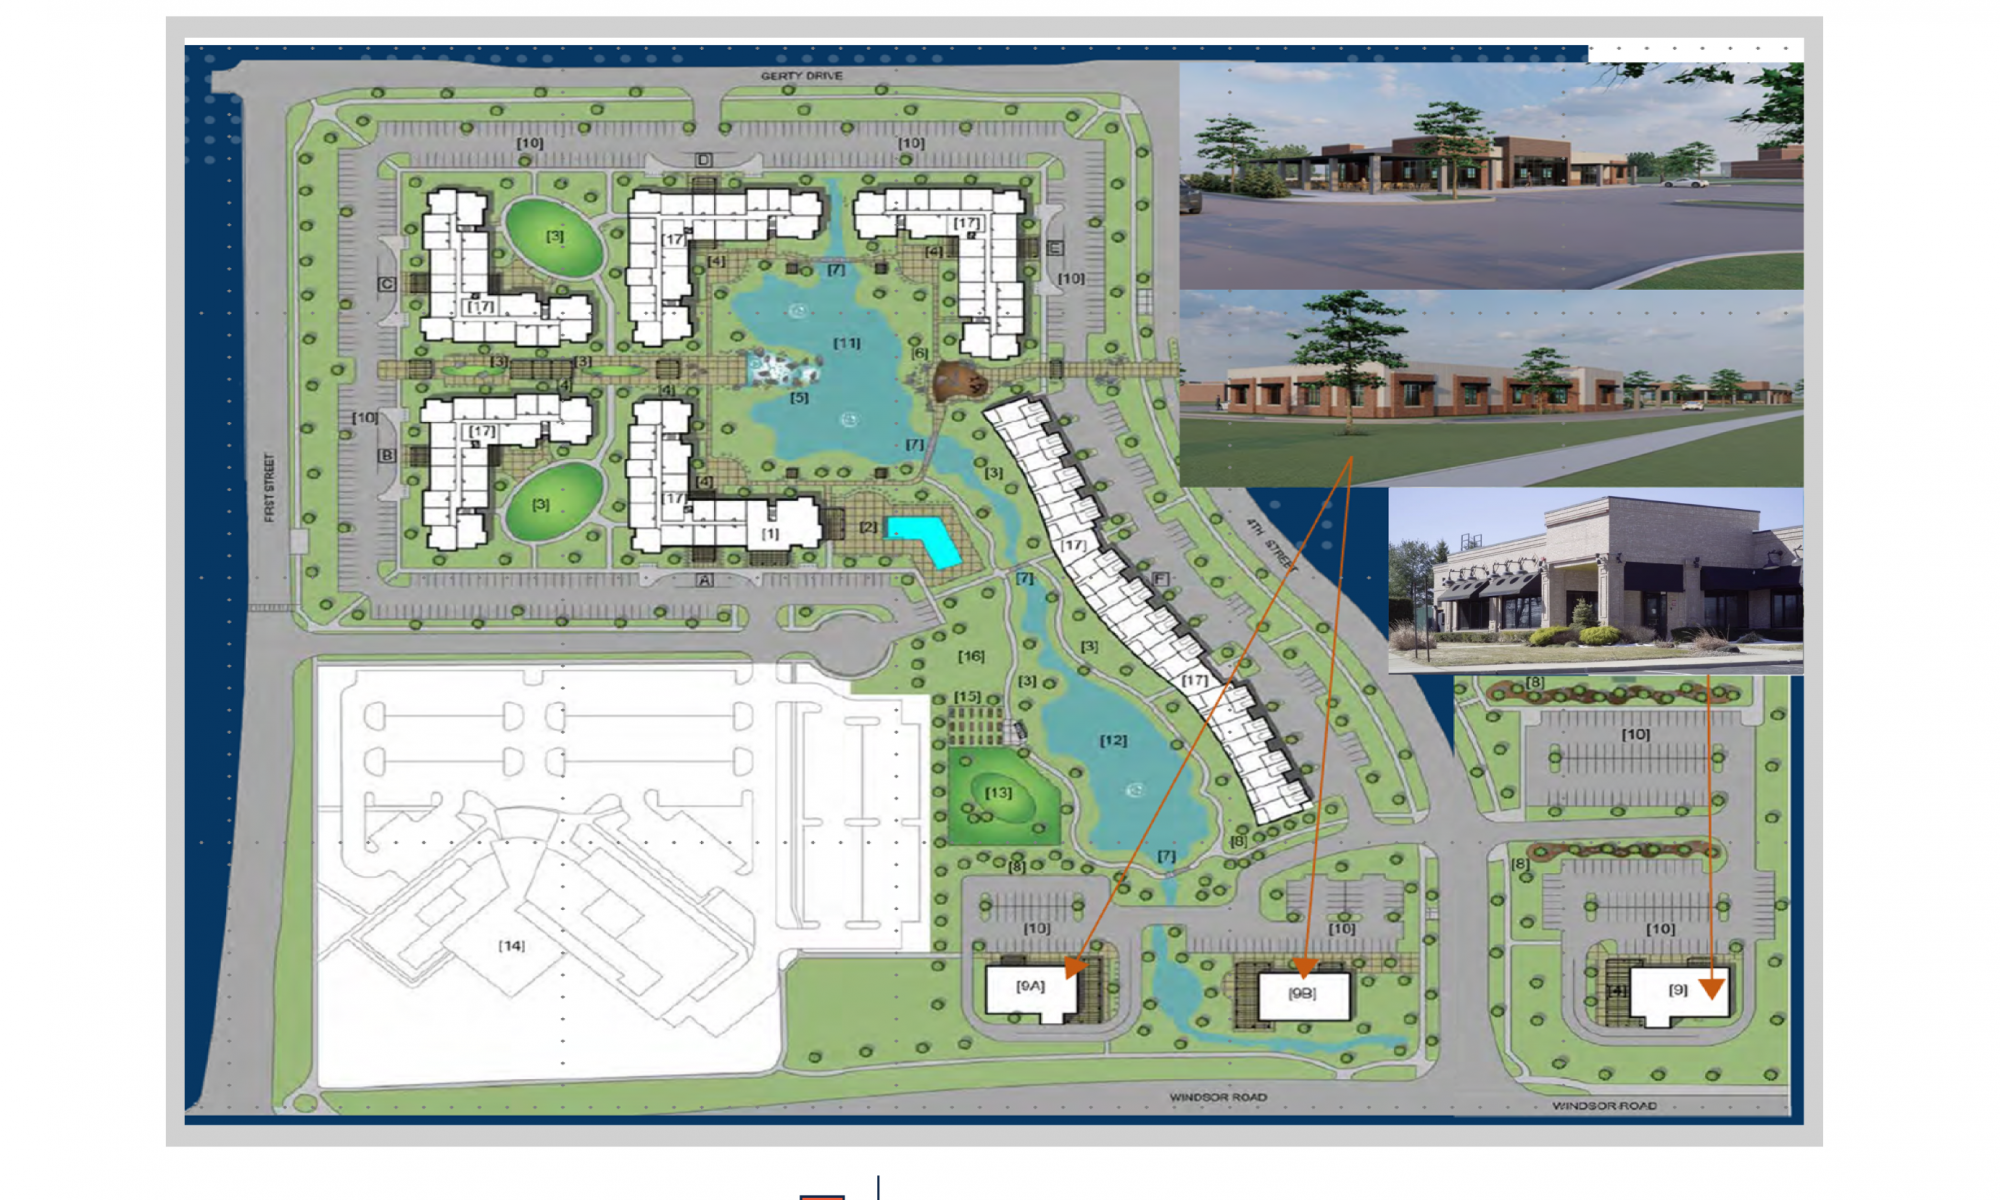 Research Park Residential and Mixed Use Development